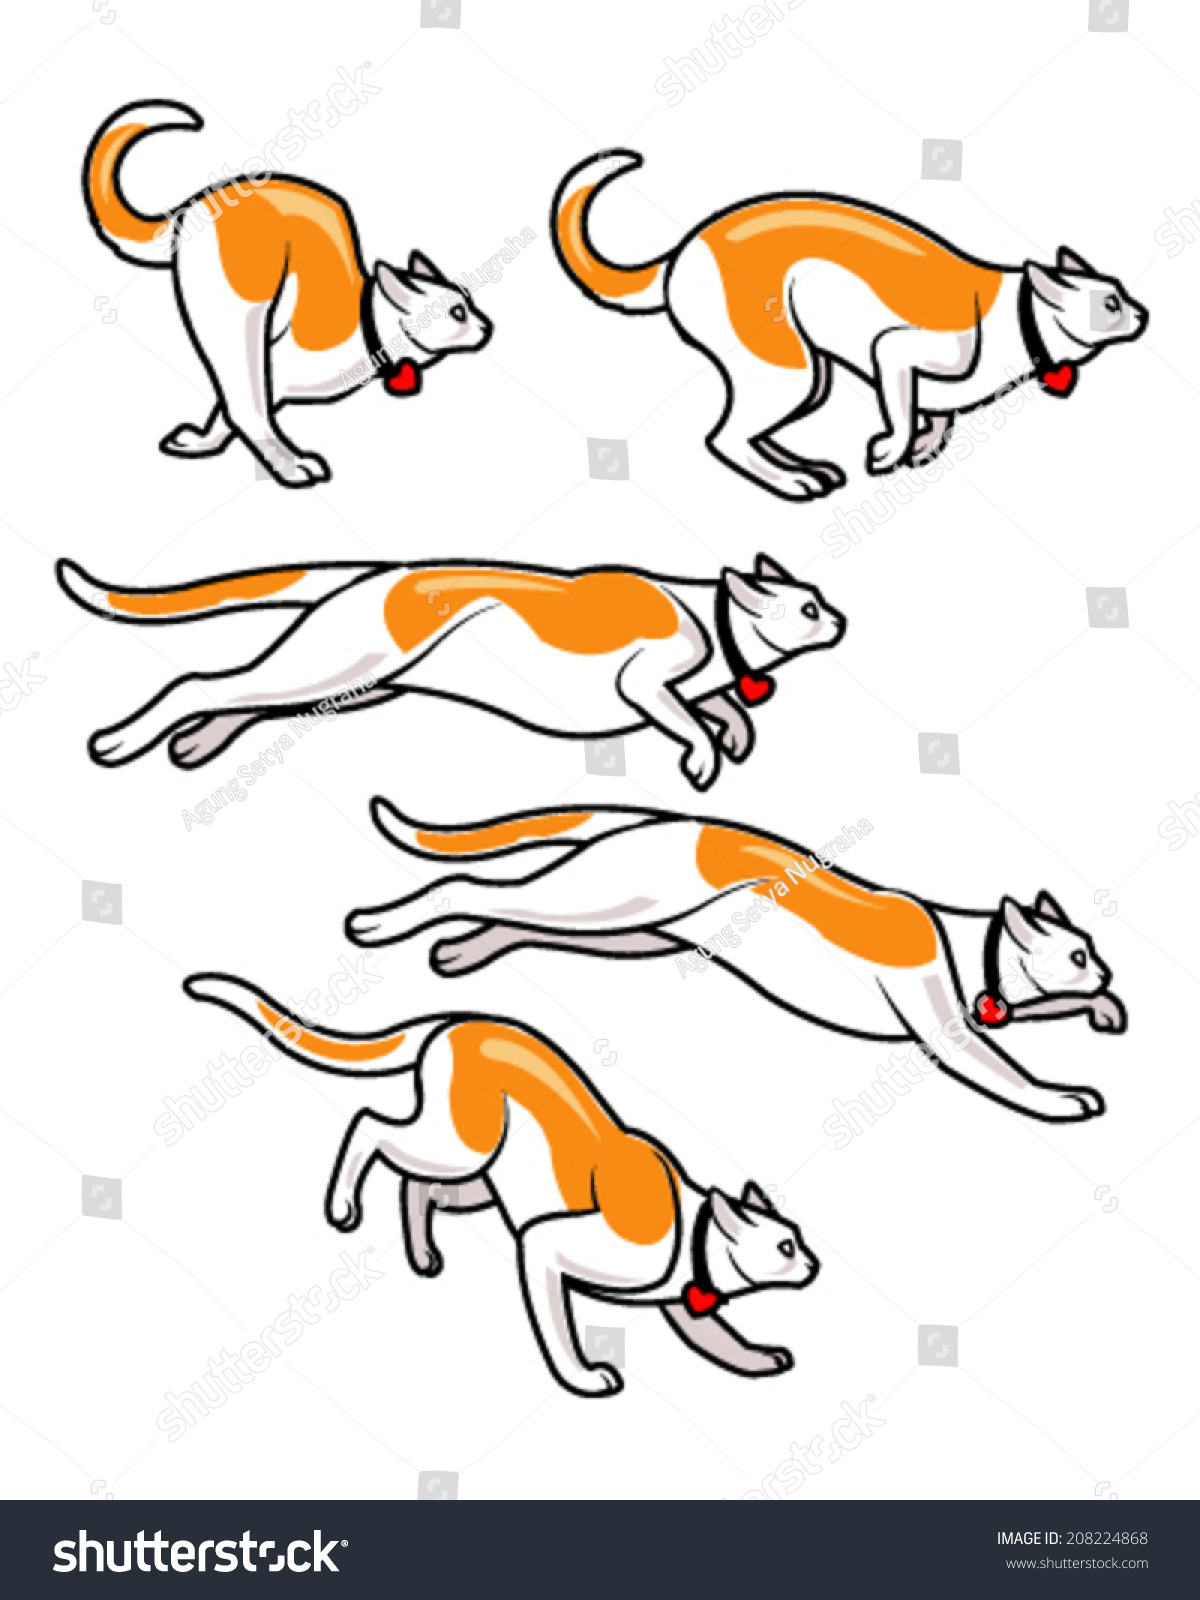 Make An Origami Wolf Cat Running Fast Sprite Stock Vector Illustration  208224868 : Shutterstock Cat Running